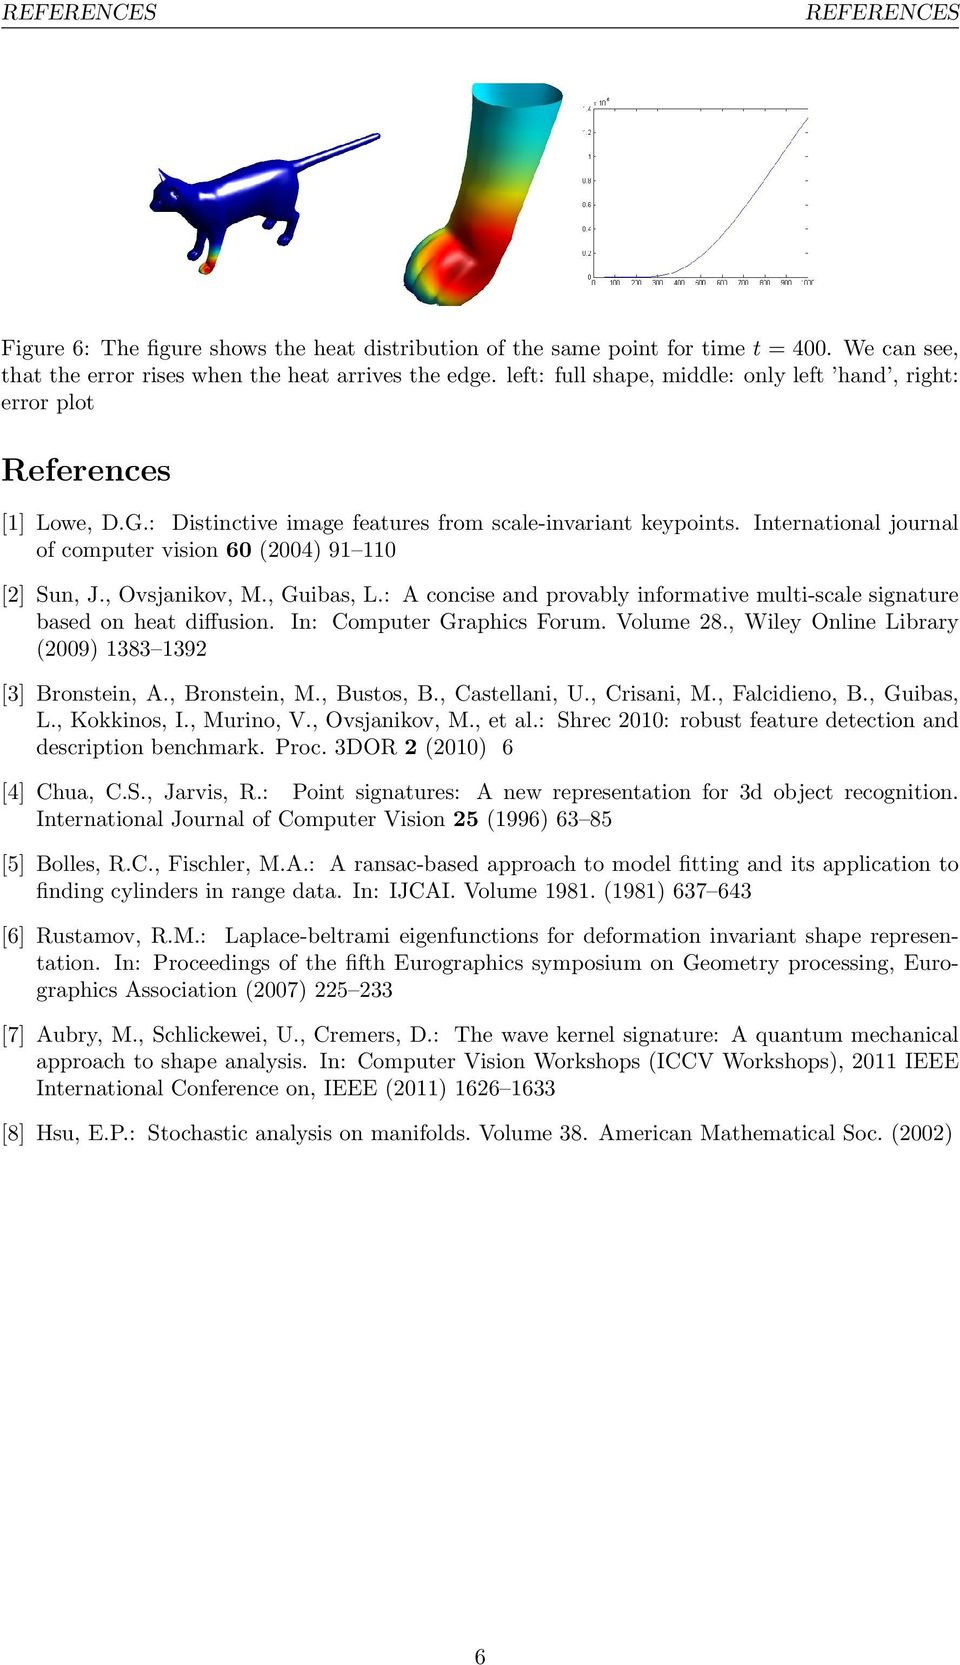 International journal of computer vision 60 (2004) 9 0 [2] Sun, J., Ovsjanikov,., Guibas, L.: A concise and provably informative multi-scale signature based on heat diffusion.